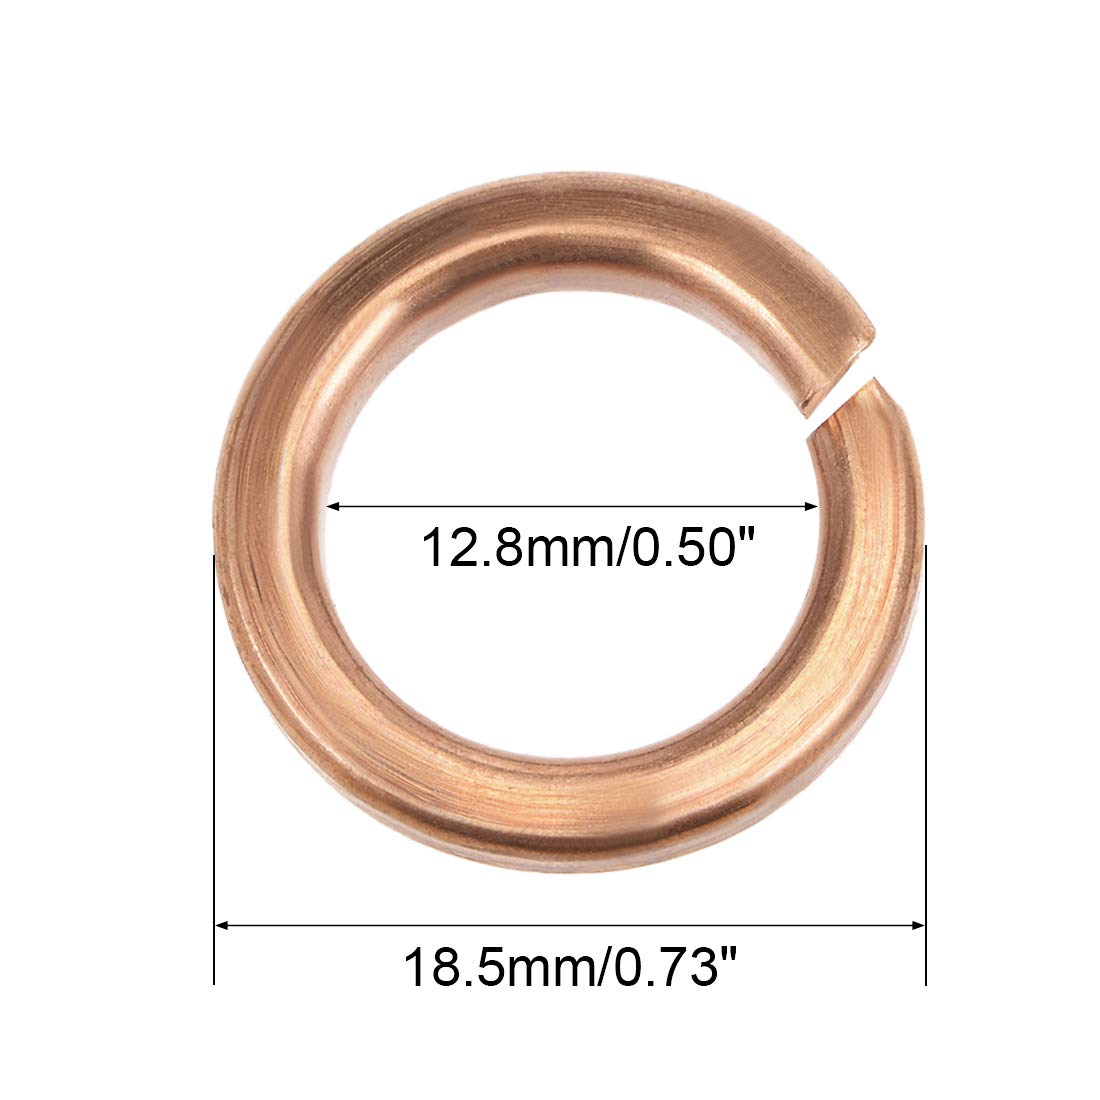 uxcell 2Pcs 48.5mm x 58mm x 2mm Copper Flat Washer for Screw Bolt